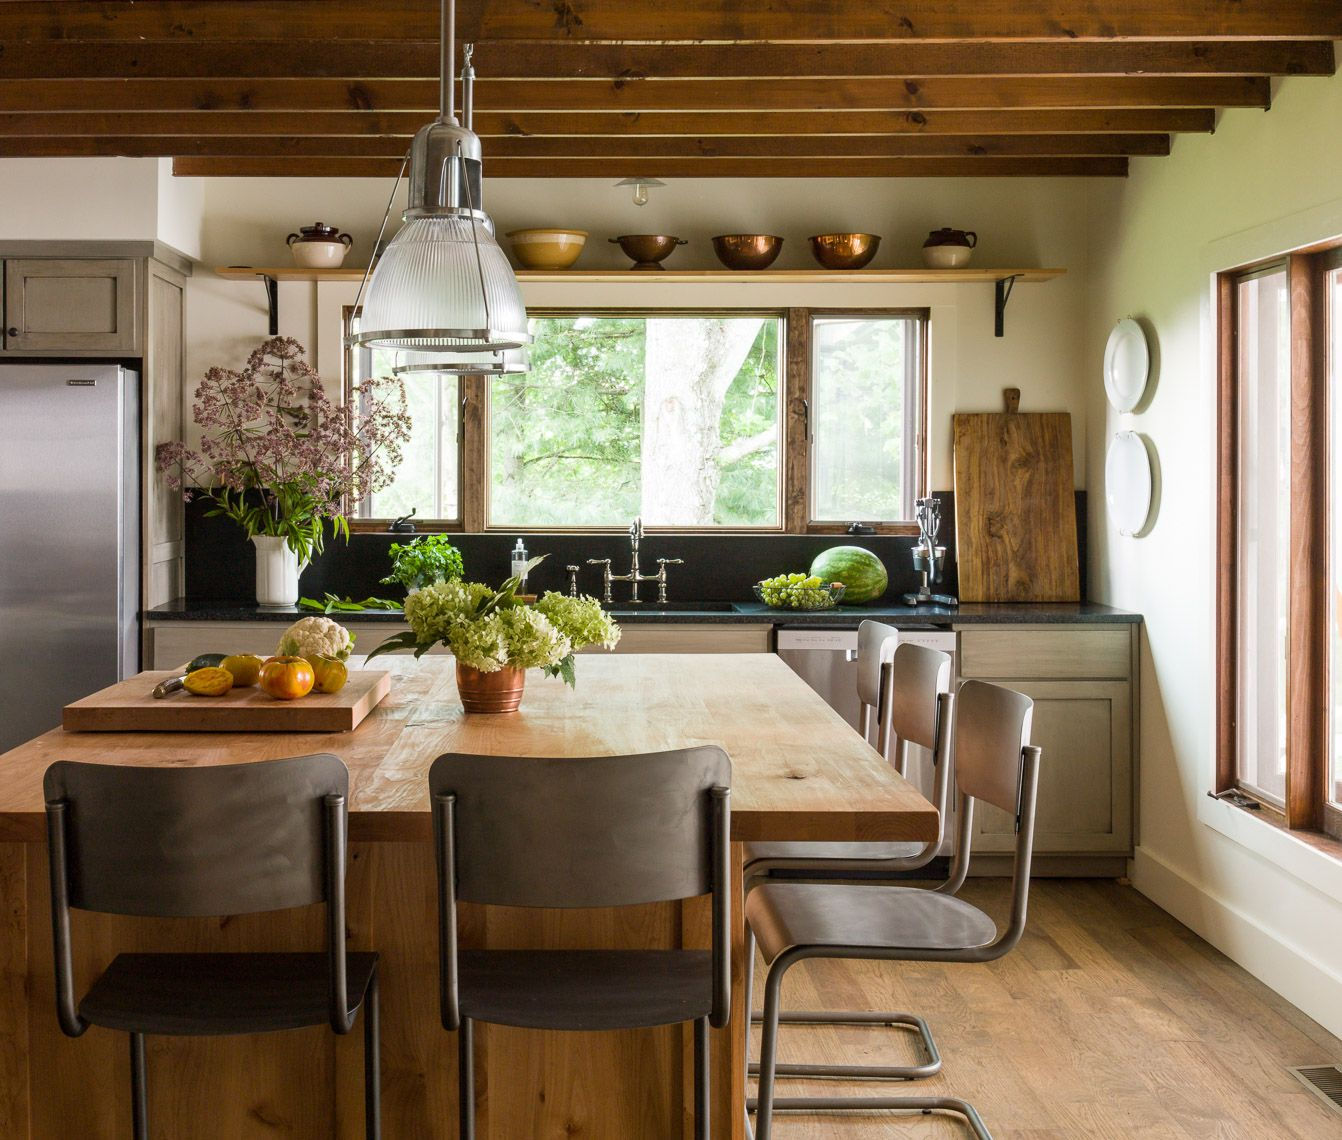 Living Room Island Cabinets: Mountain House Kitchen Before And After Via Lauren Liess